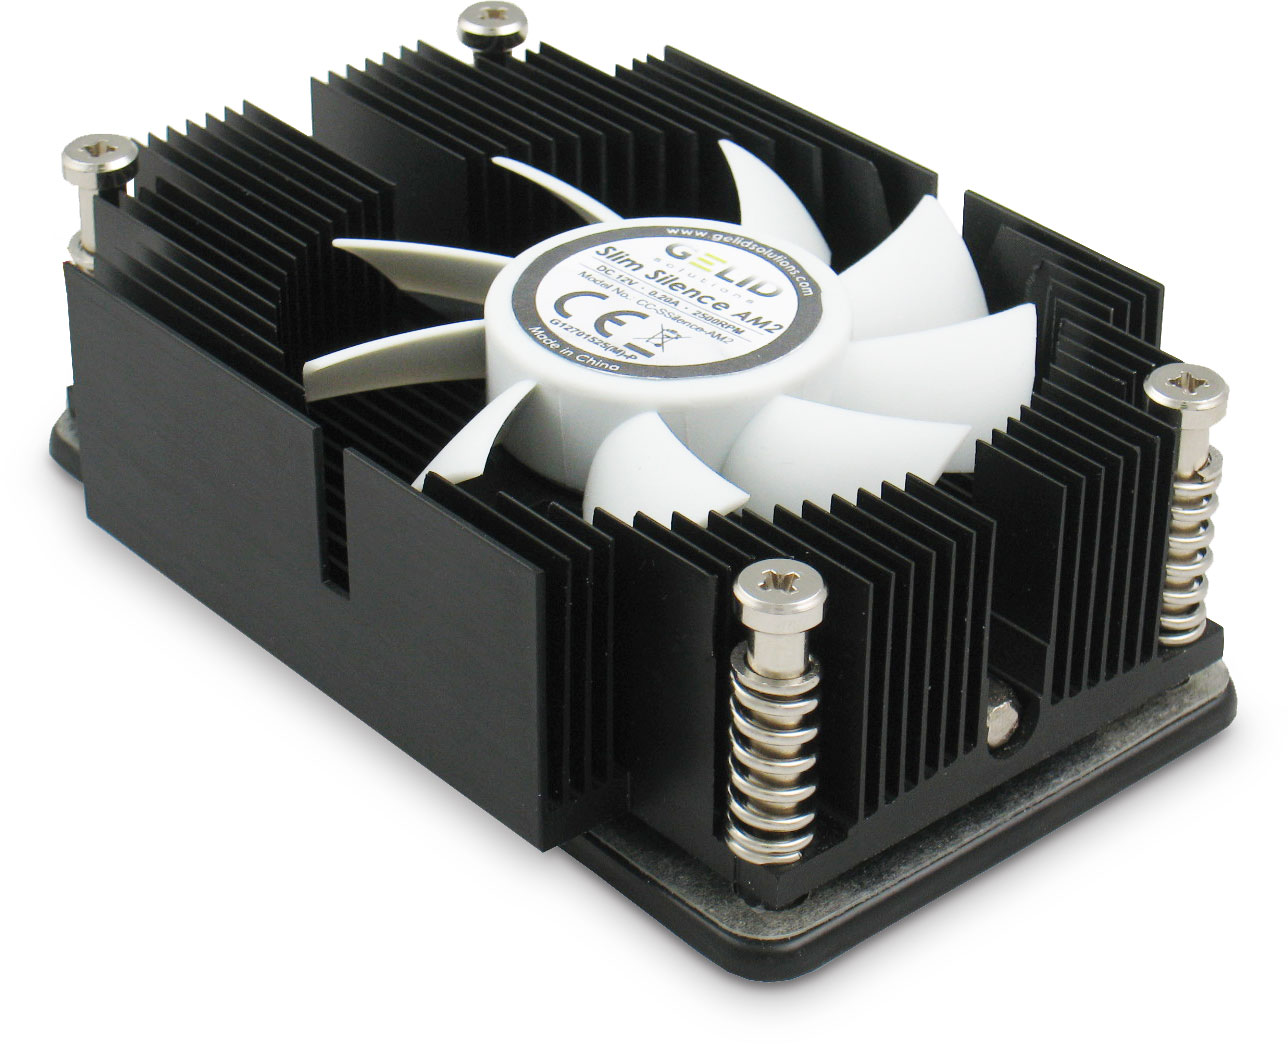 Slim Silence Am2 Low Profile Amd Cpu Cooler